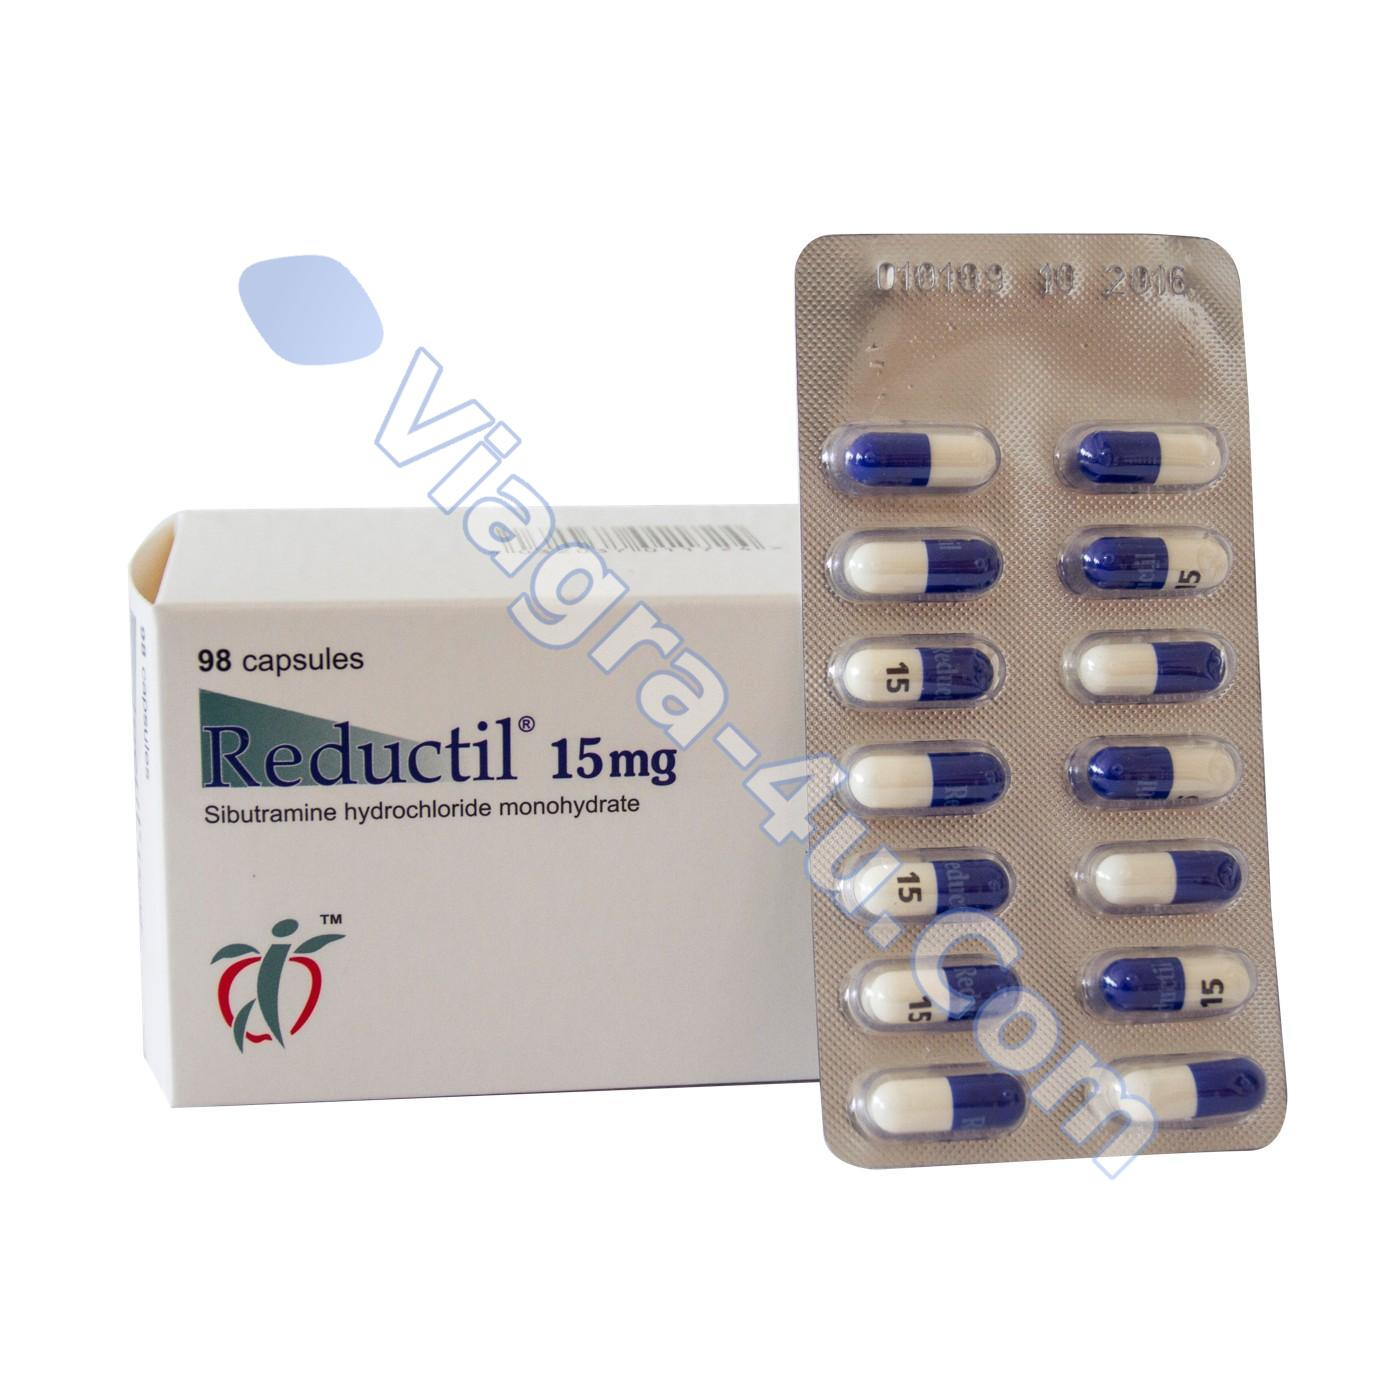 50 mg doxycycline capsules